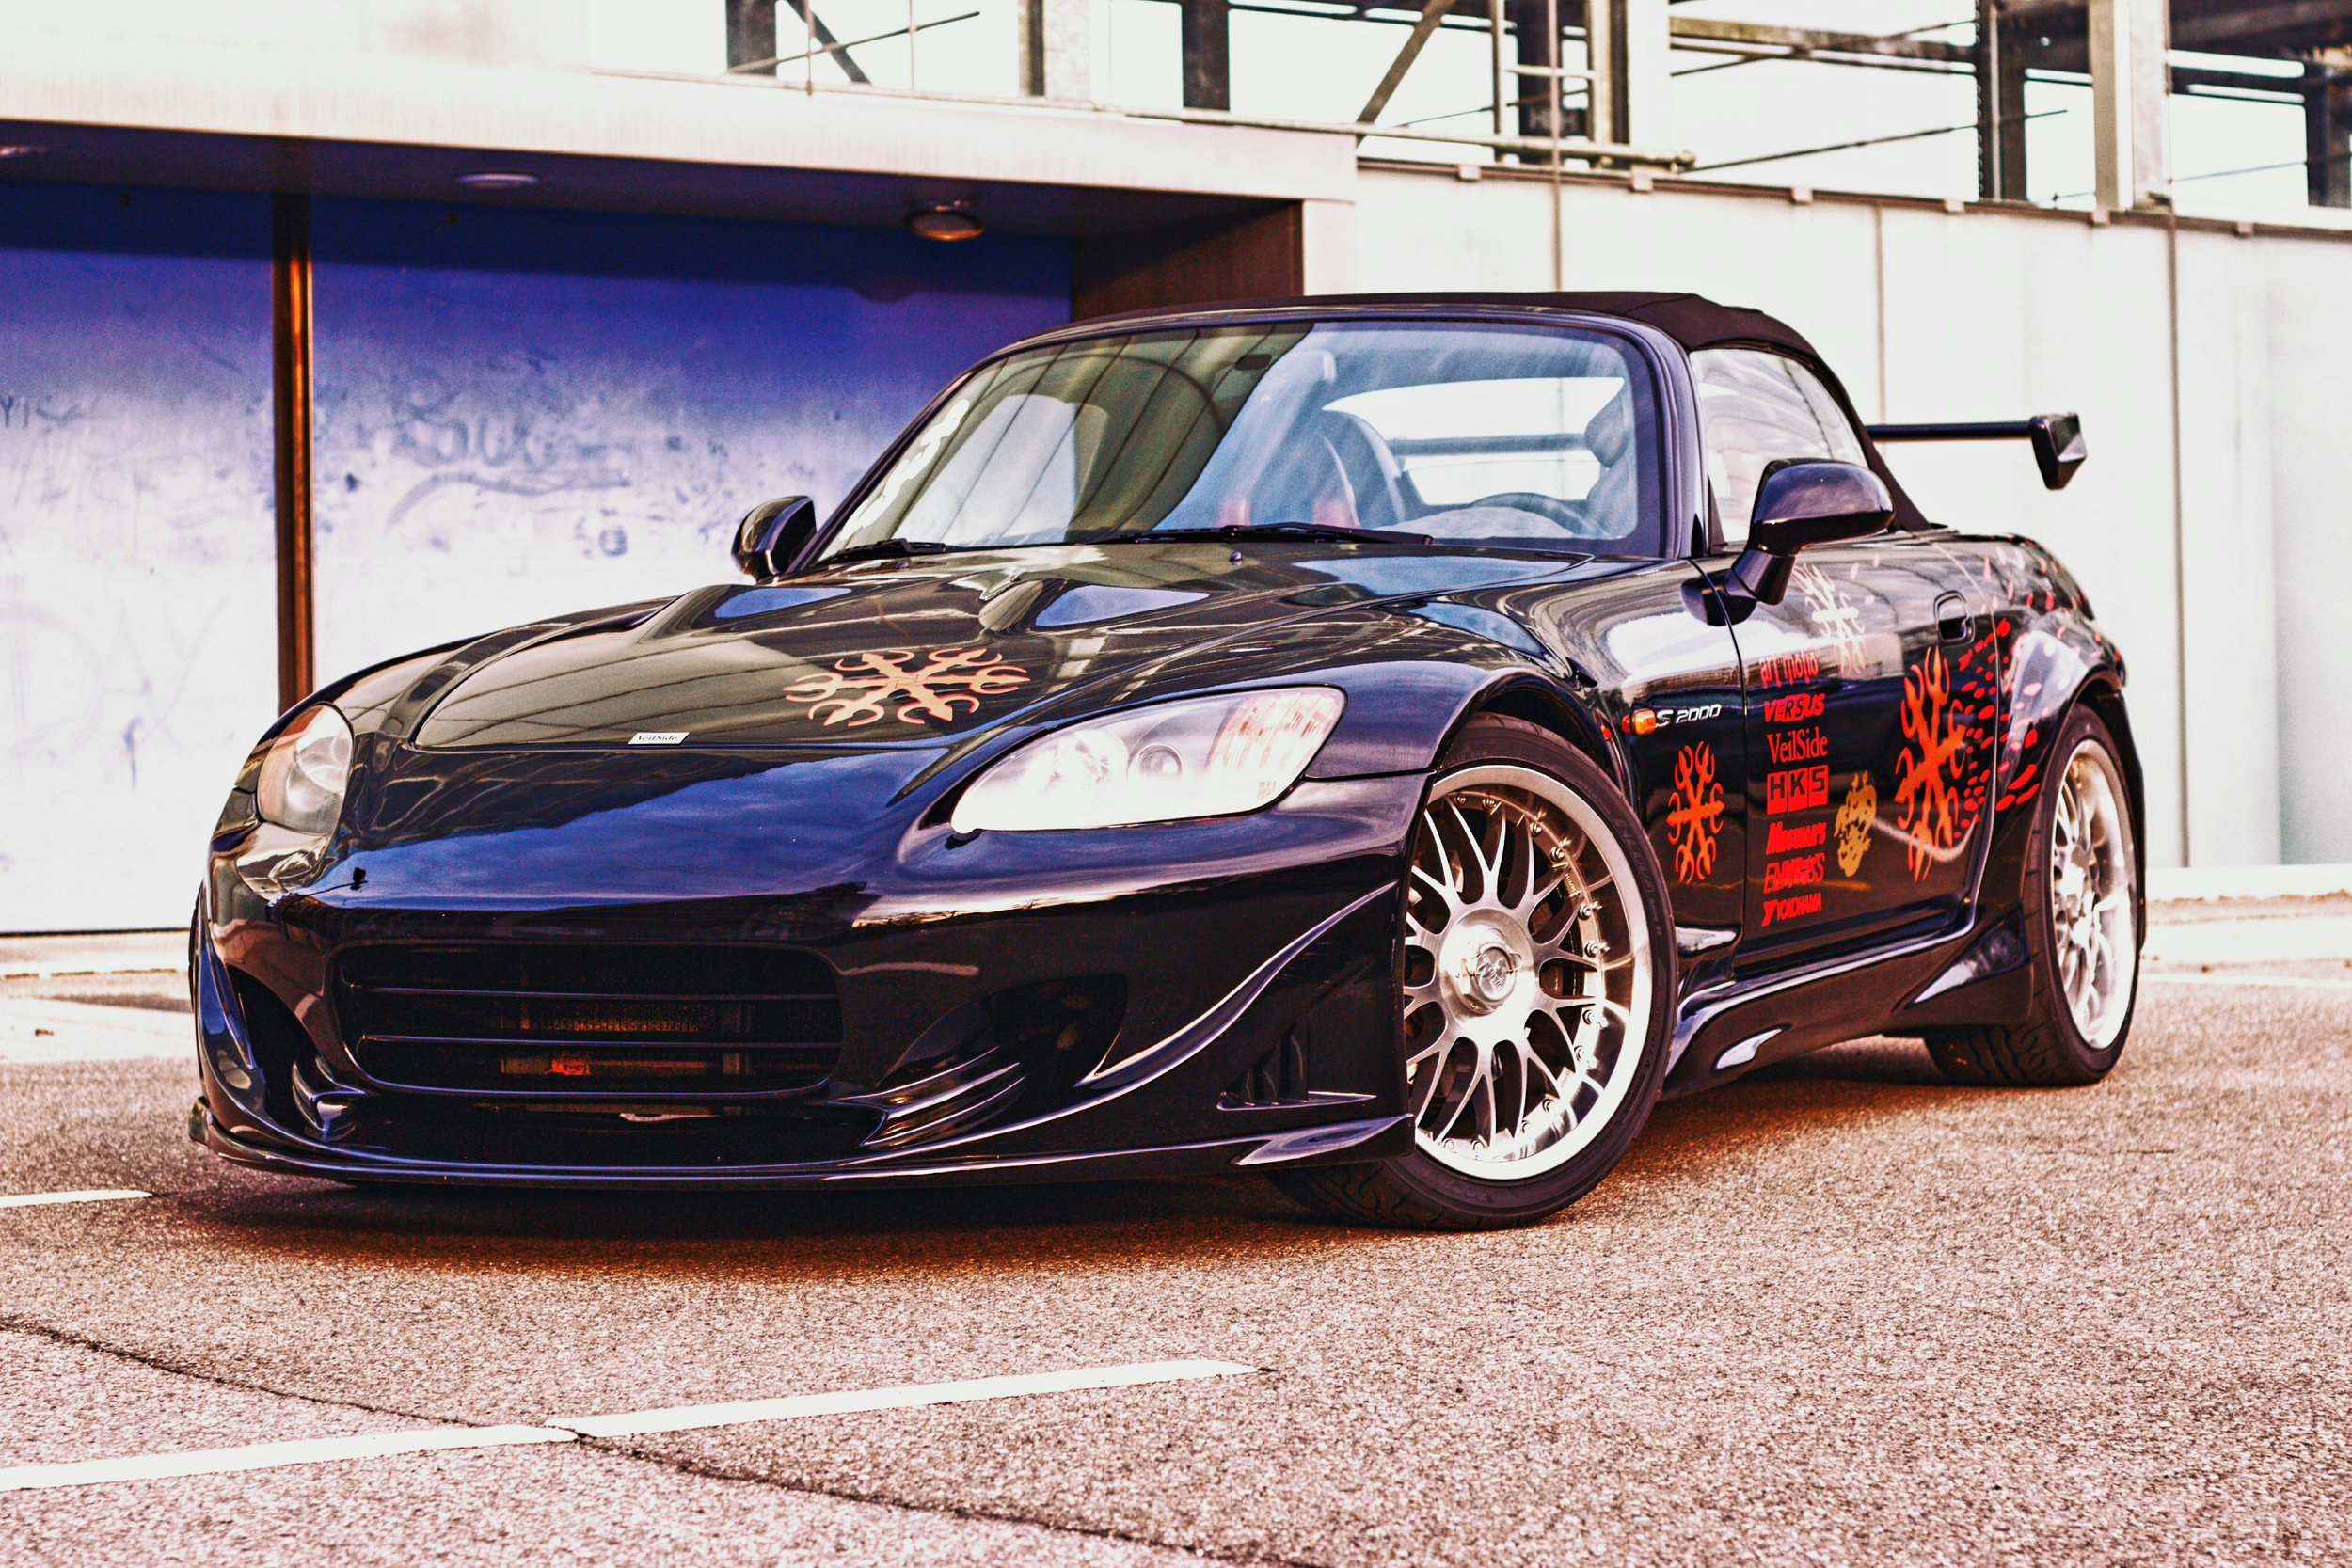 Honda S2000 aus the Fast and the furious